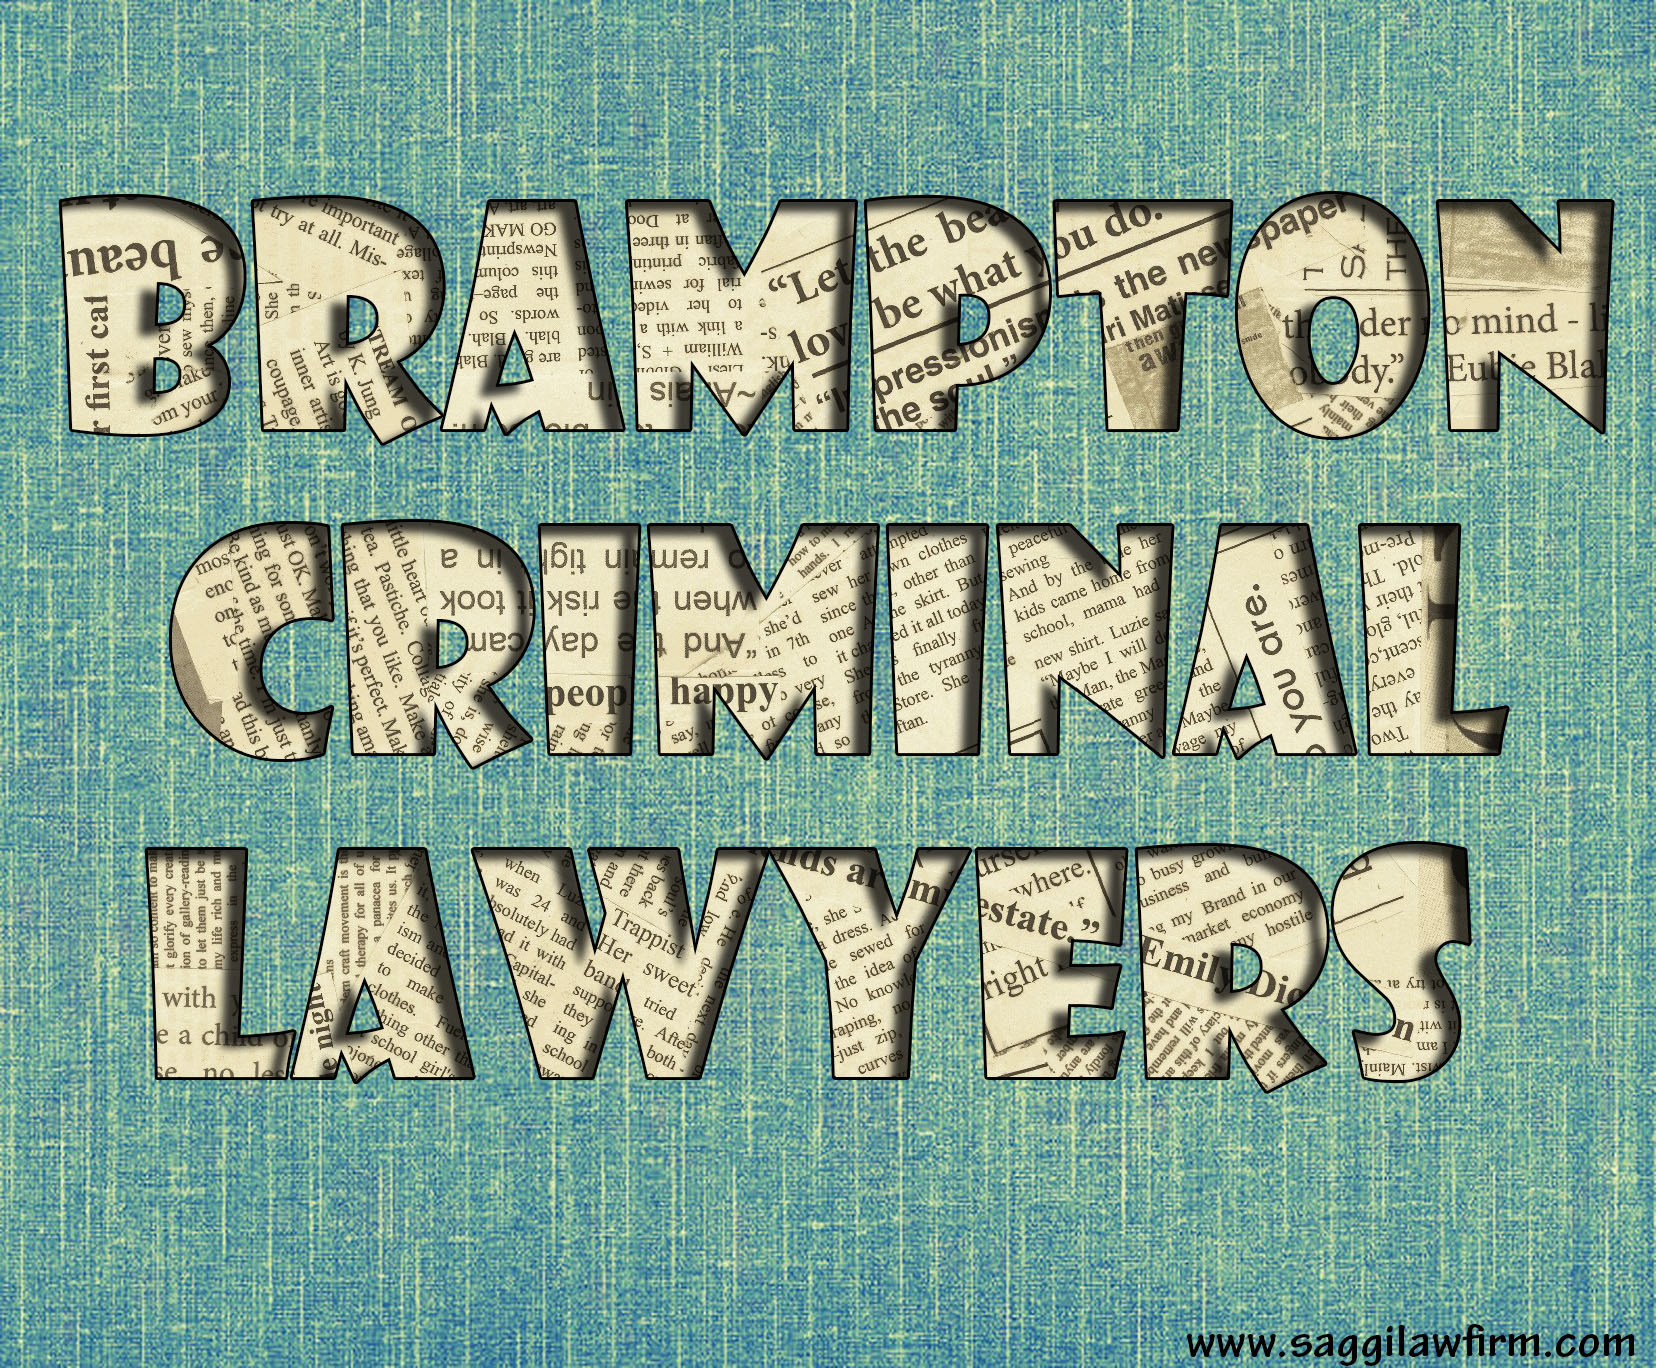 Brampton Criminal Lawyers